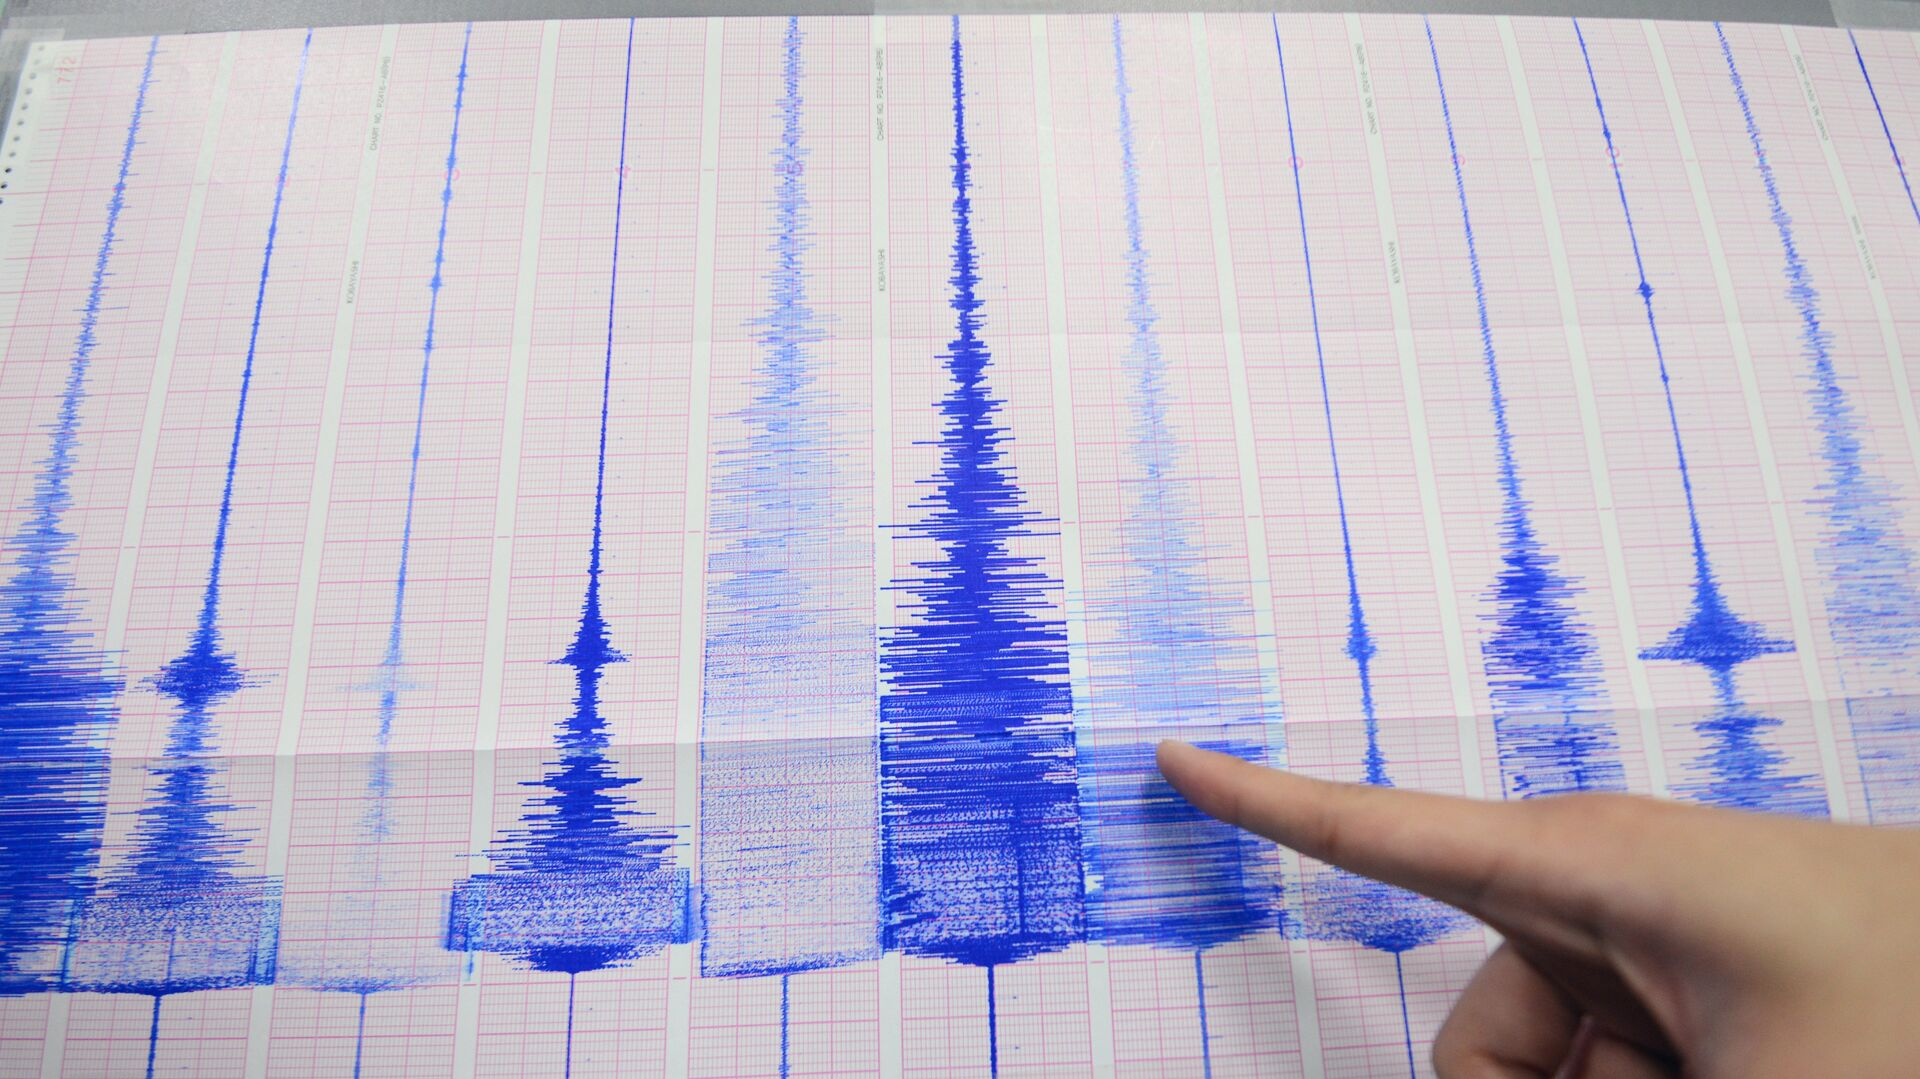 A staff member of the Seismology Center points to a chart showing the earthquake activity detected by the central Weather Bureau in Taipei on April 20, 2015 - Sputnik International, 1920, 24.09.2021